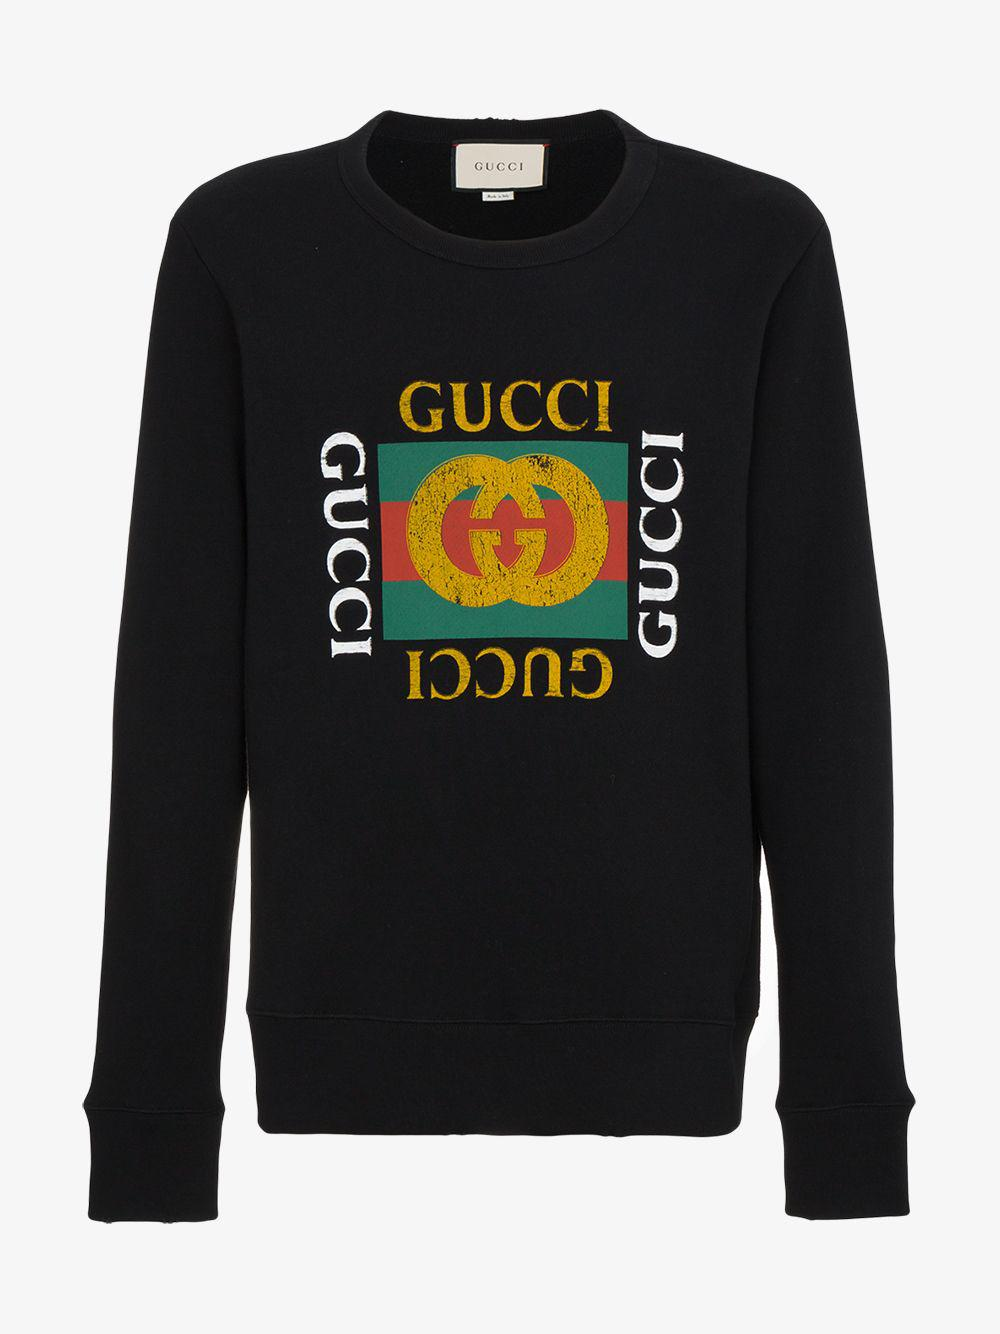 bbaa40ddfb4 Lyst - Gucci Cotton Sweatshirt With Logo in Black for Men - Save 72%